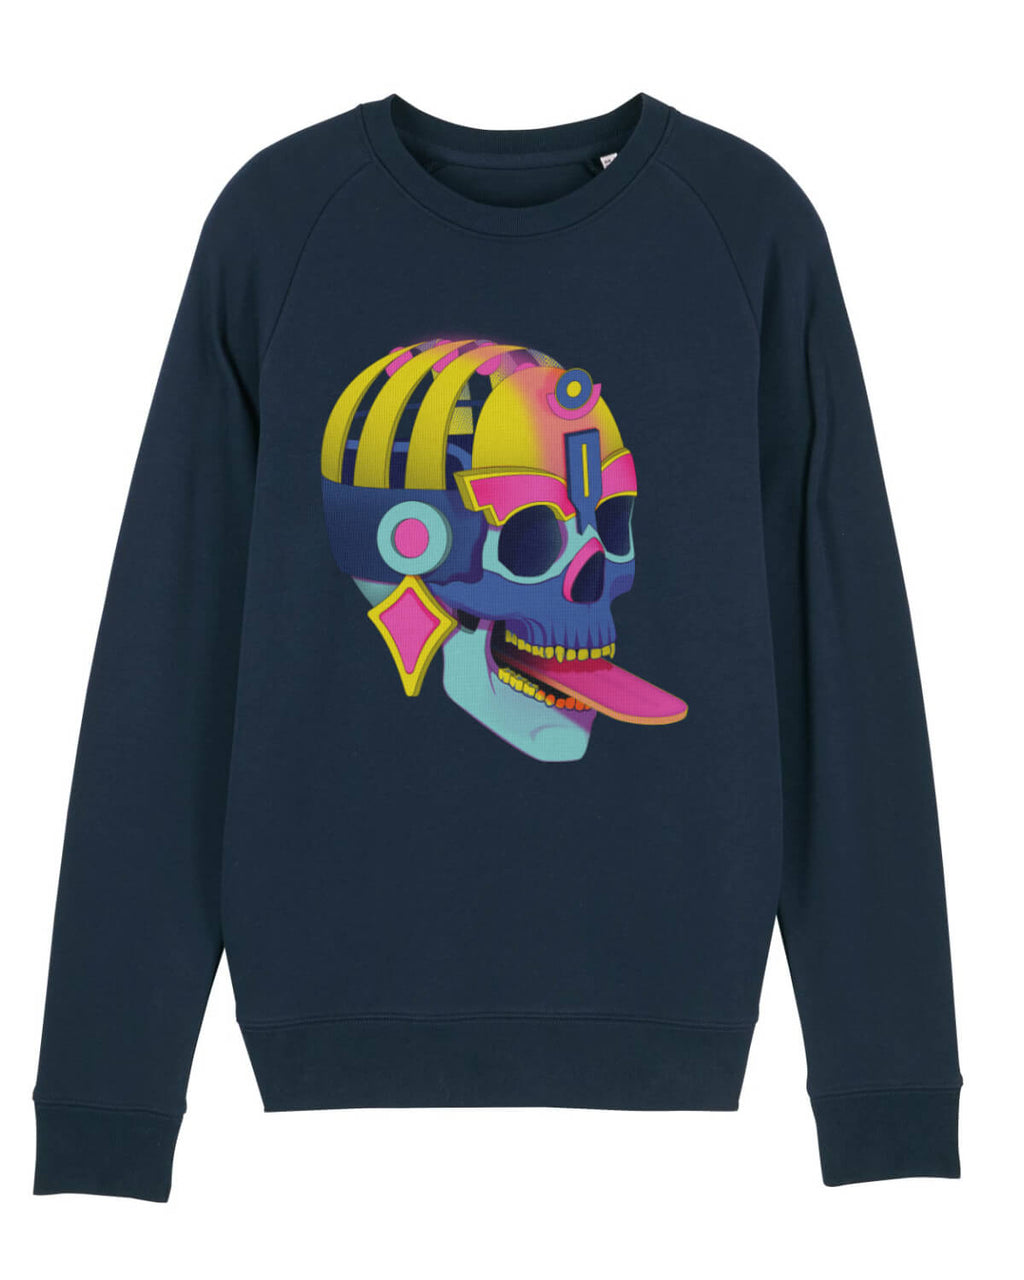 mens navy cotton midweight sweatshirt with large modern skull print